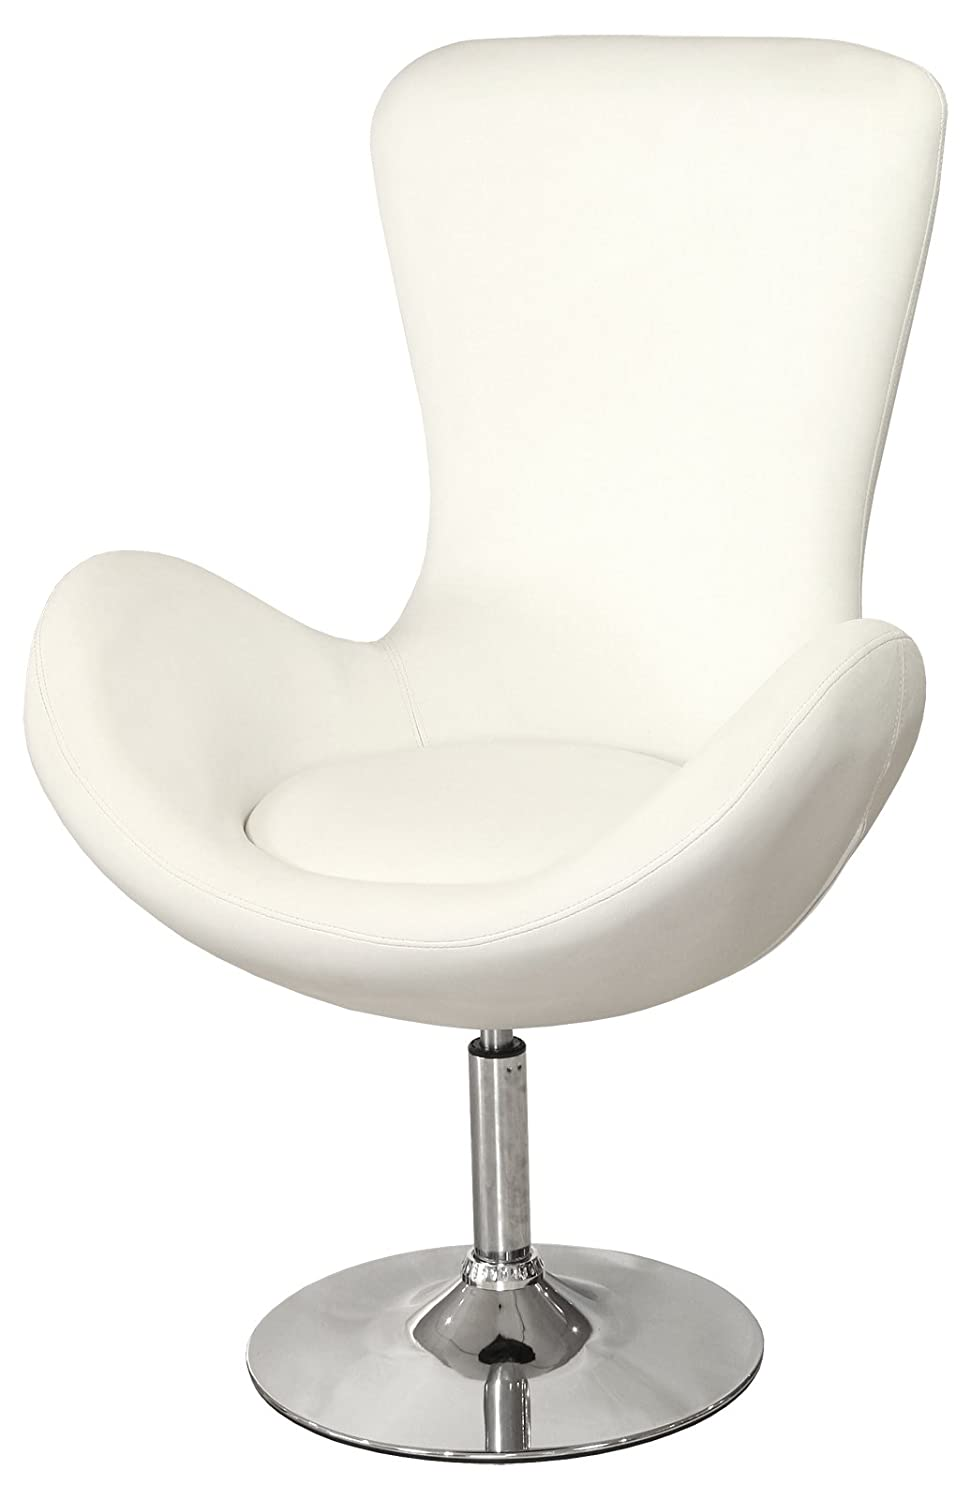 Febland Bucket Racing Chair, Faux Leather, Ivory FW464W